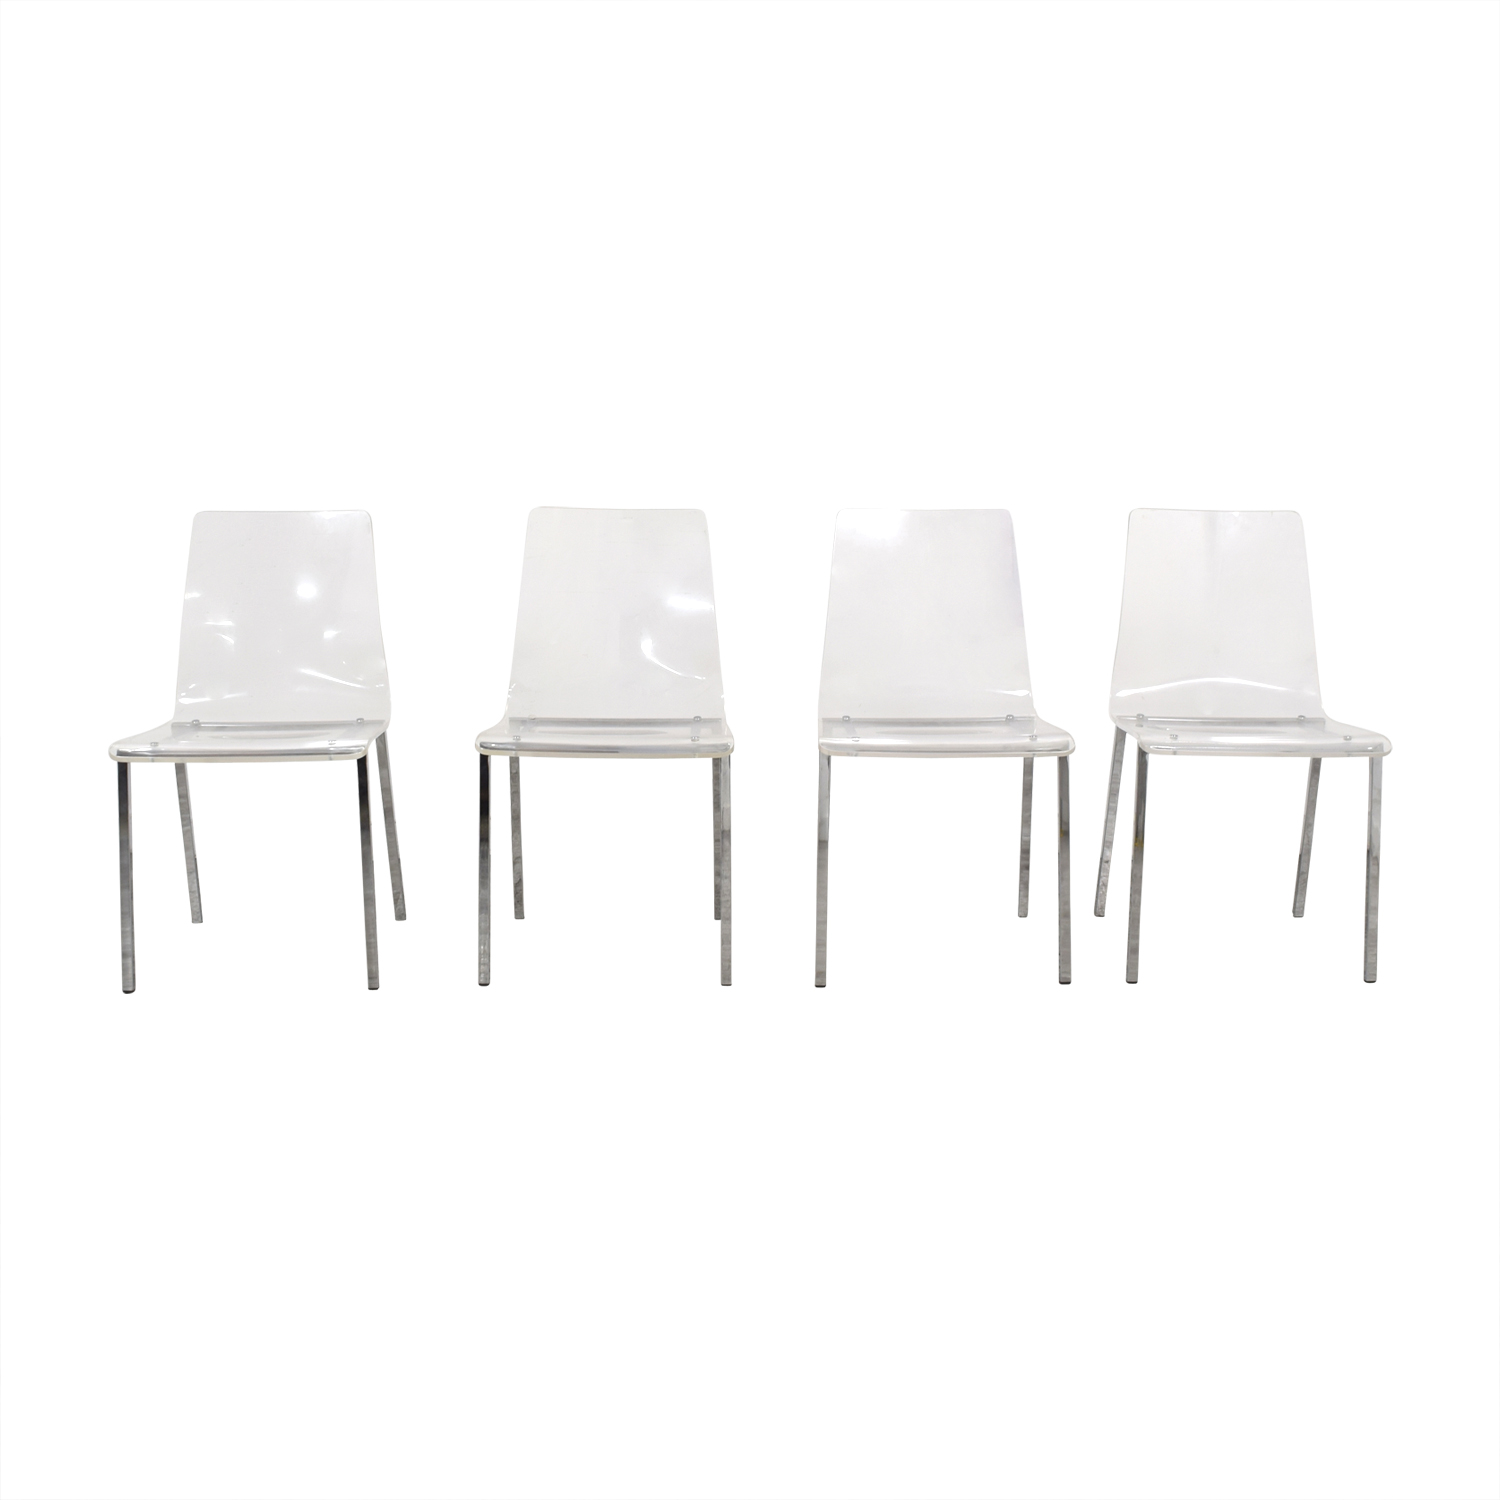 CB2 Vapor Chairs / Chairs